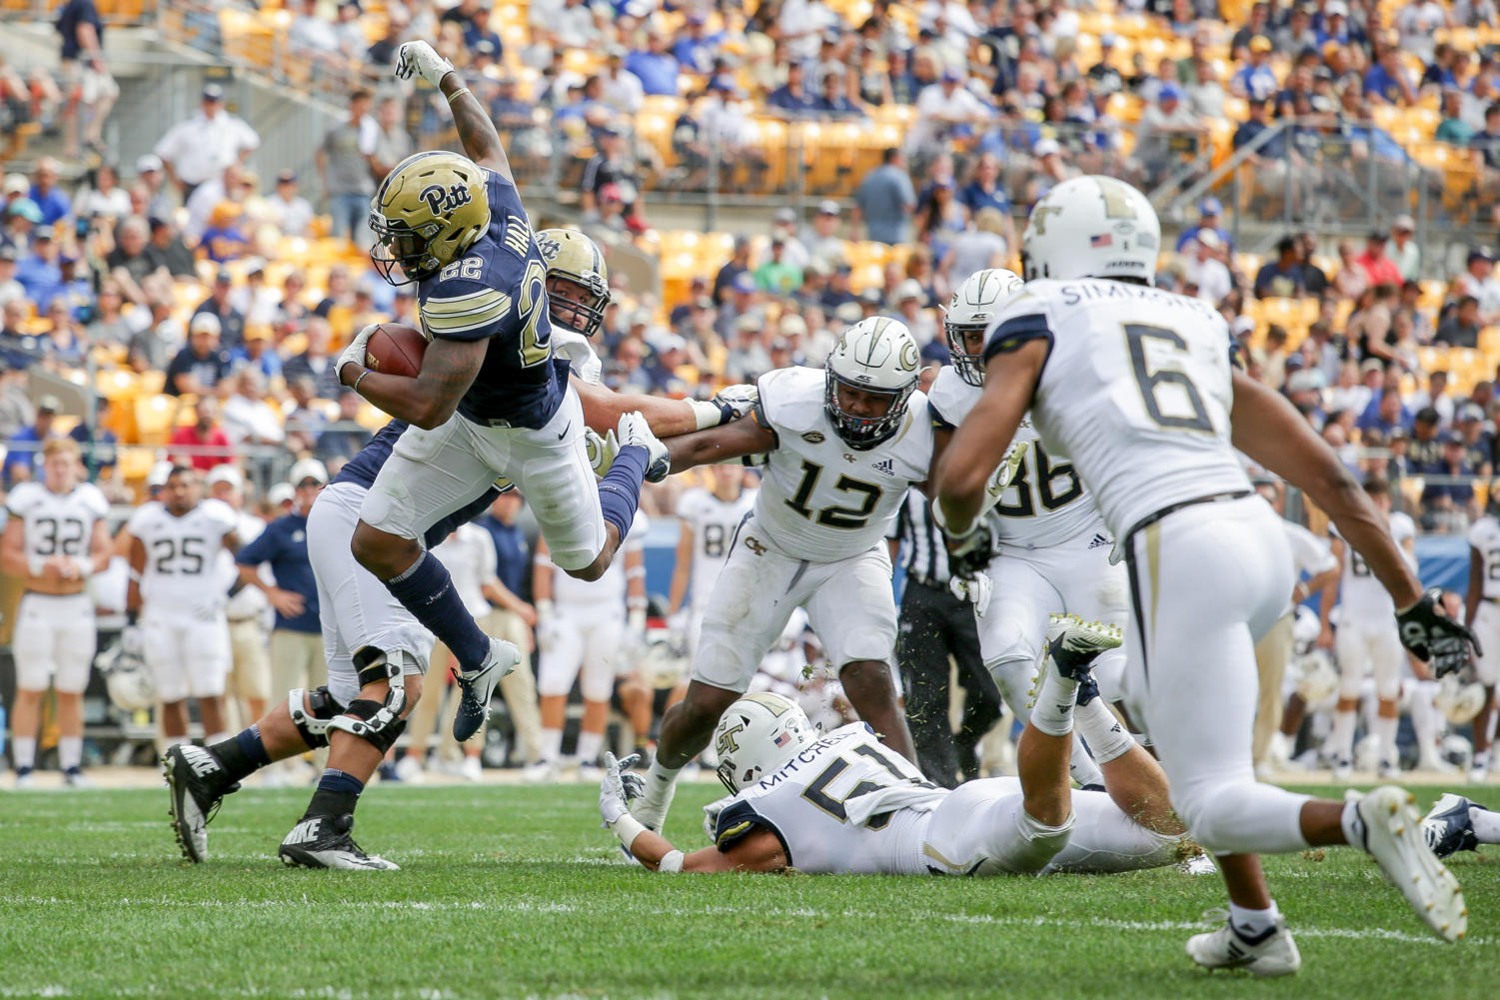 Senior running back Darrin Hall (22), pictured here against Georgia Tech, led Pitt with 84 rushing yards in their loss to North Carolina.